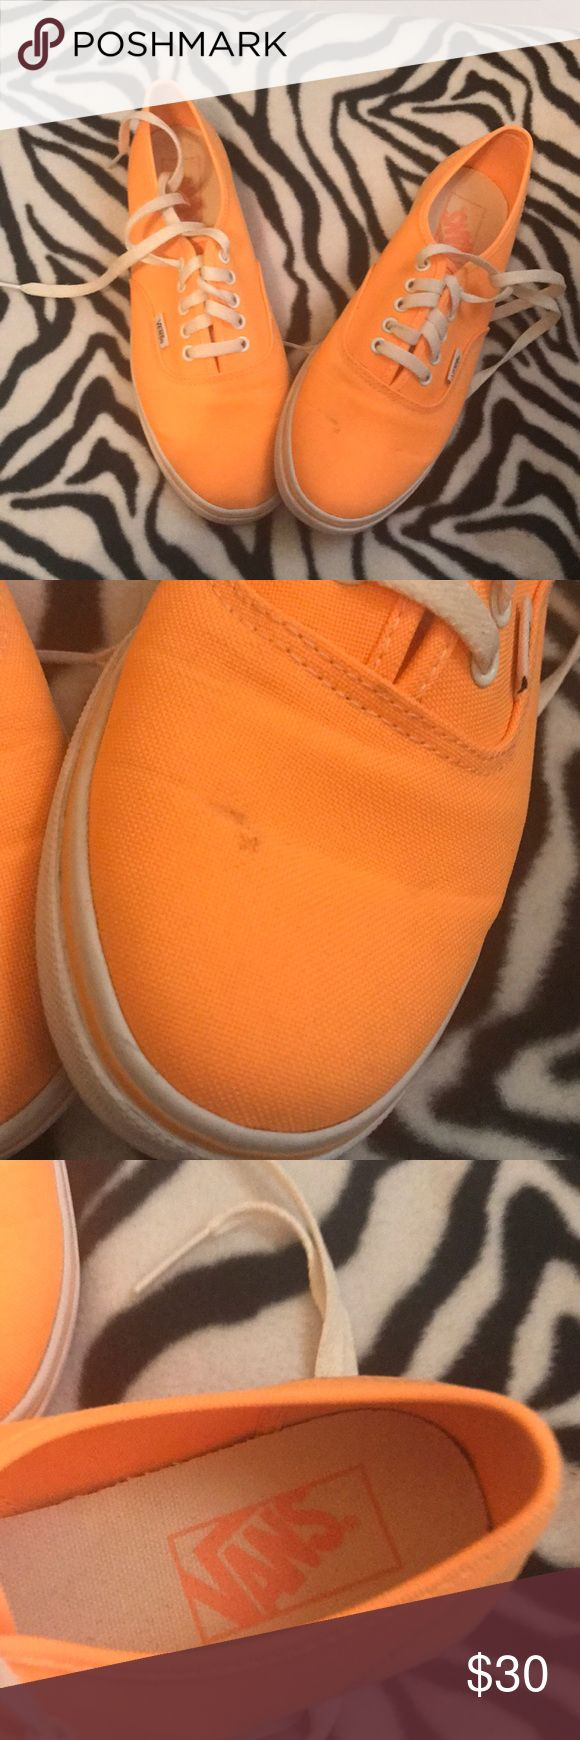 Neon Orange Vans Sneakers Neon Orange Vans. Slight mark on the front as shown in the photo other than that they are in great condition Vans Shoes Sneakers